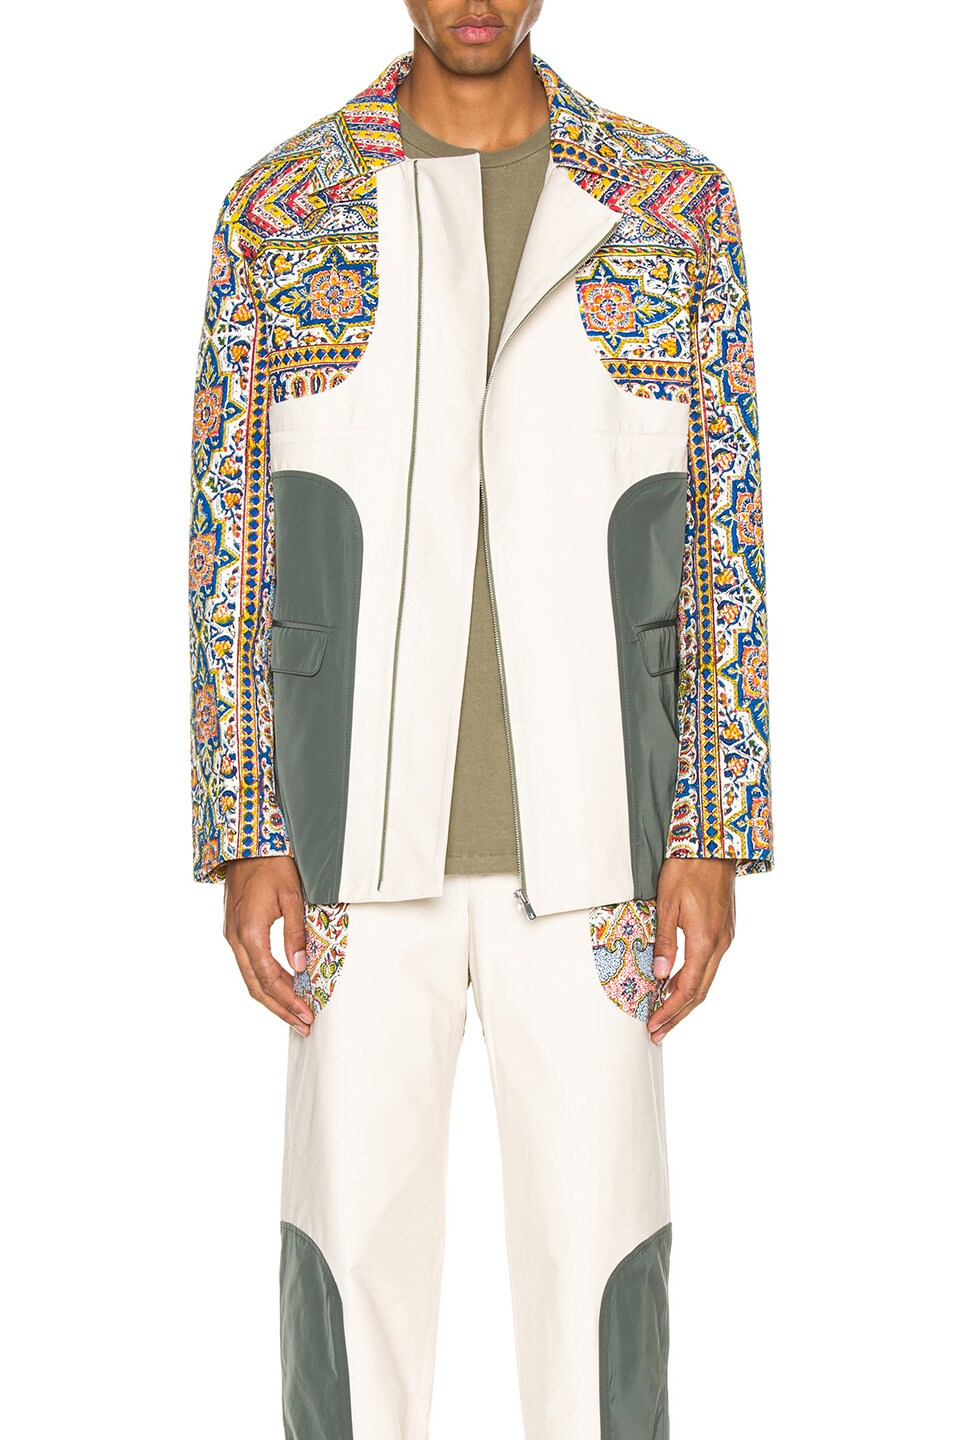 Image 1 of Paria Farzaneh Iranian Print Panel Suit Jacket in Multi